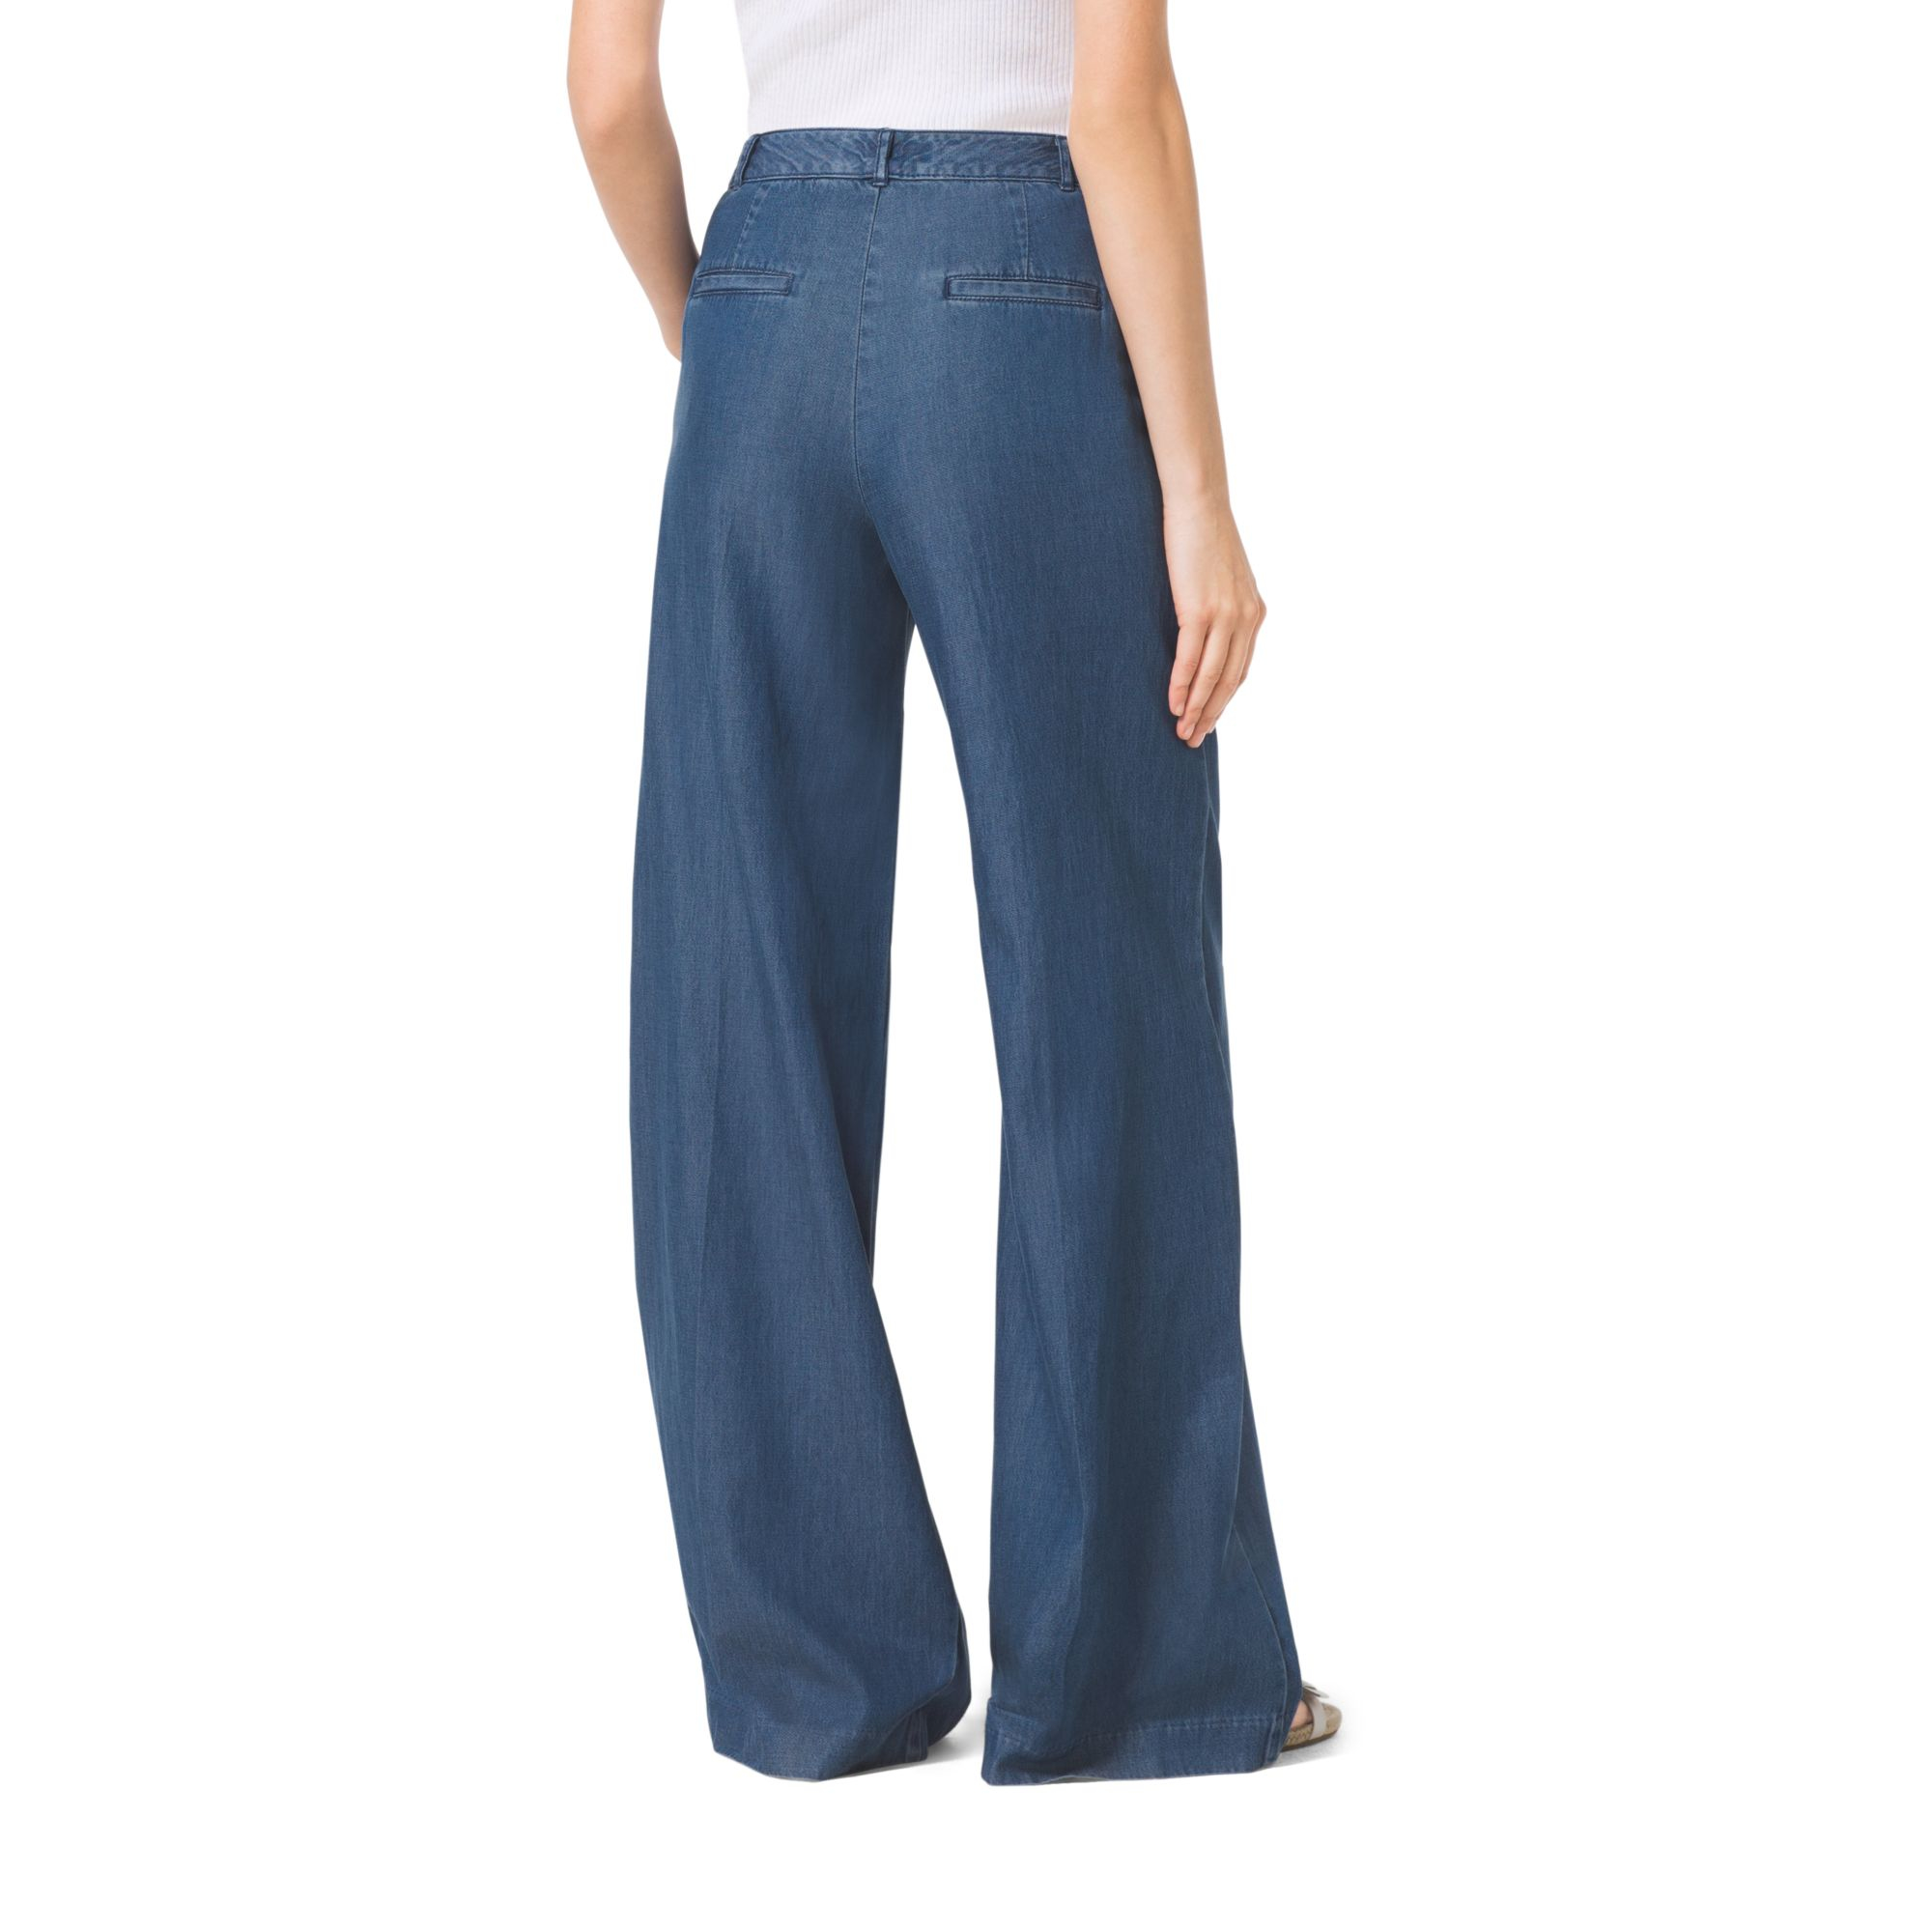 Michael kors Chambray Wide-leg Pants in Blue | Lyst